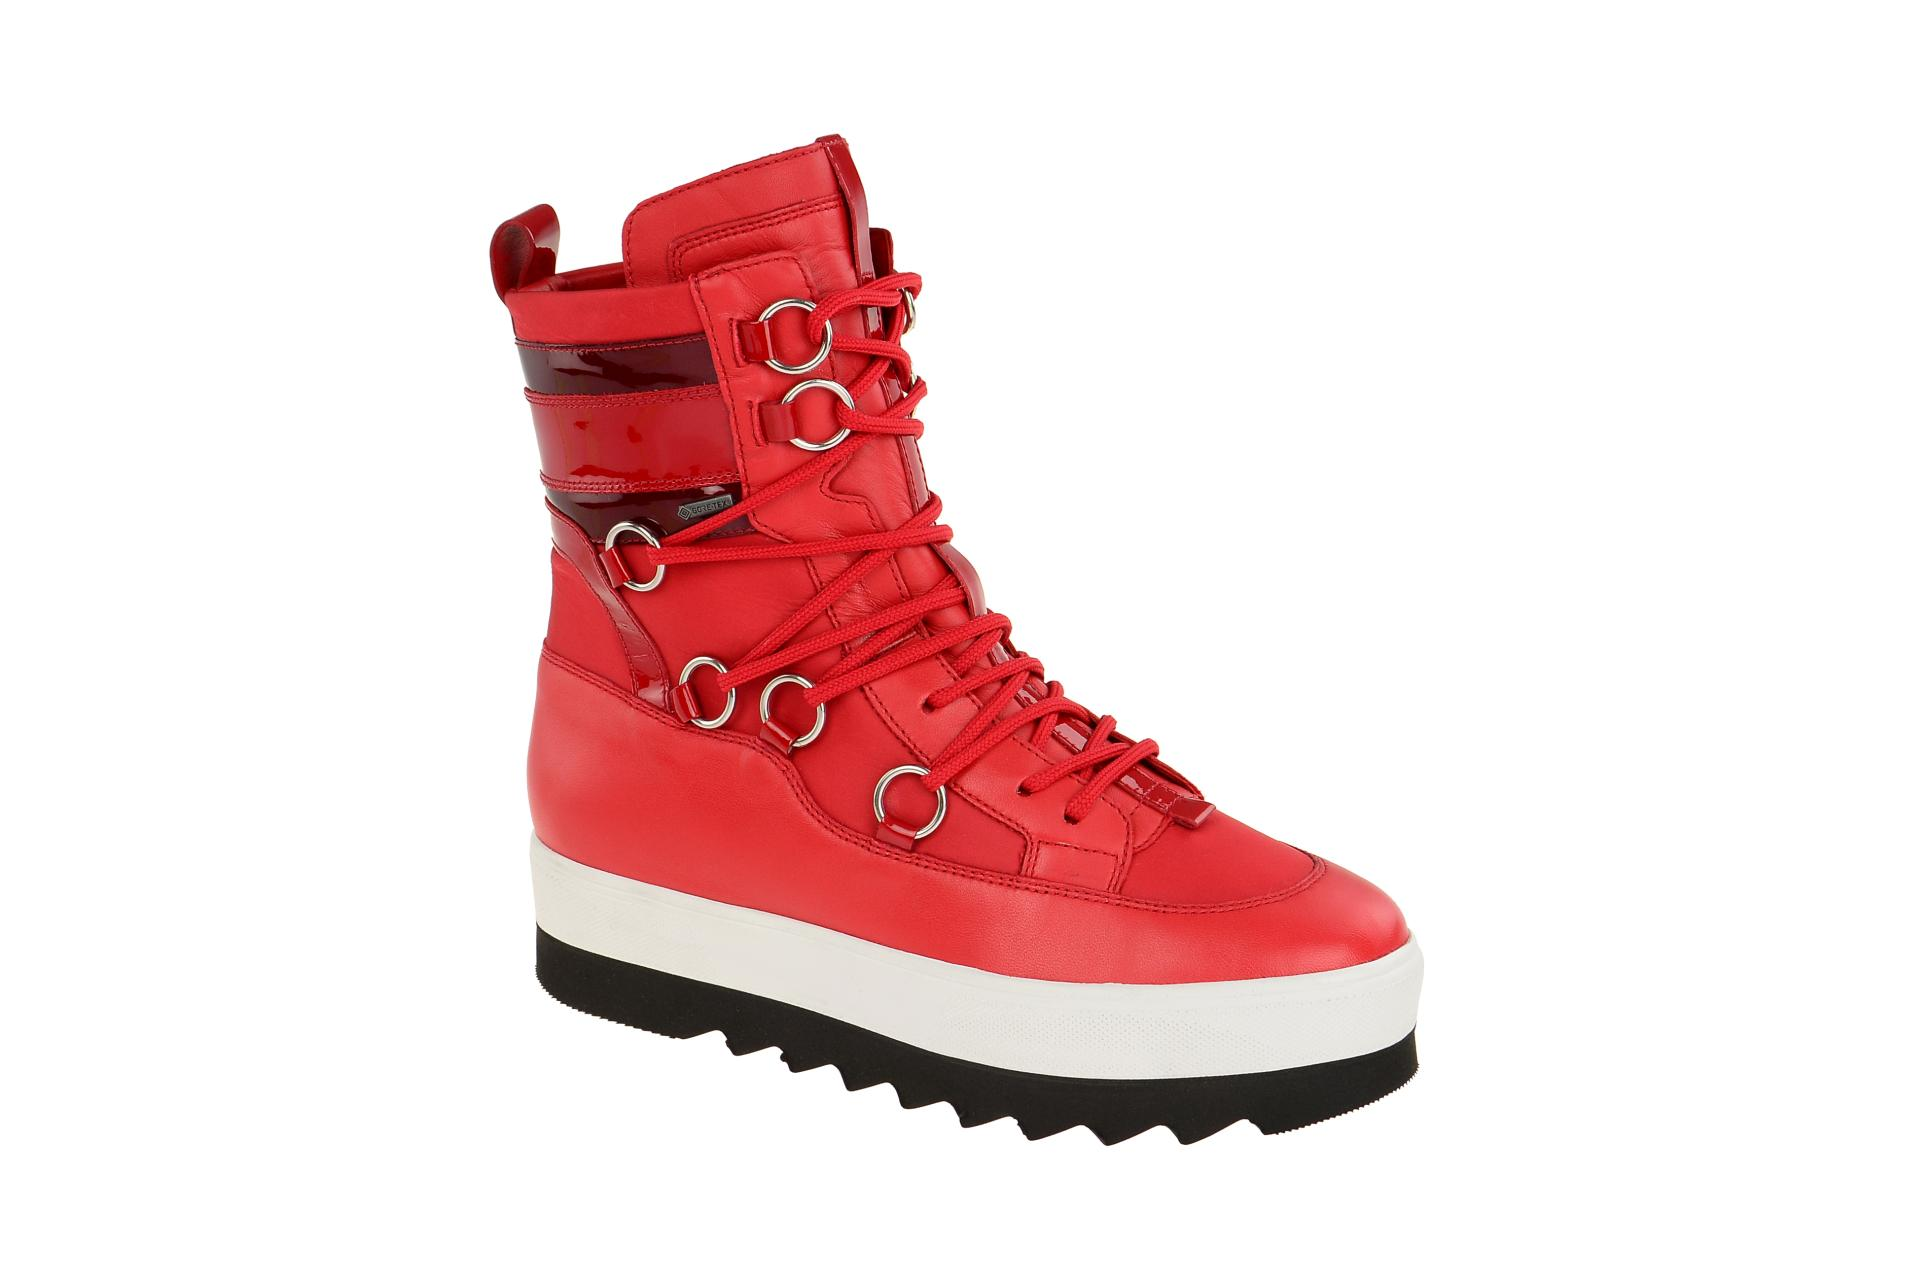 promo code 3719d ab091 Högl 4-10 1810 4000 Stiefel rot